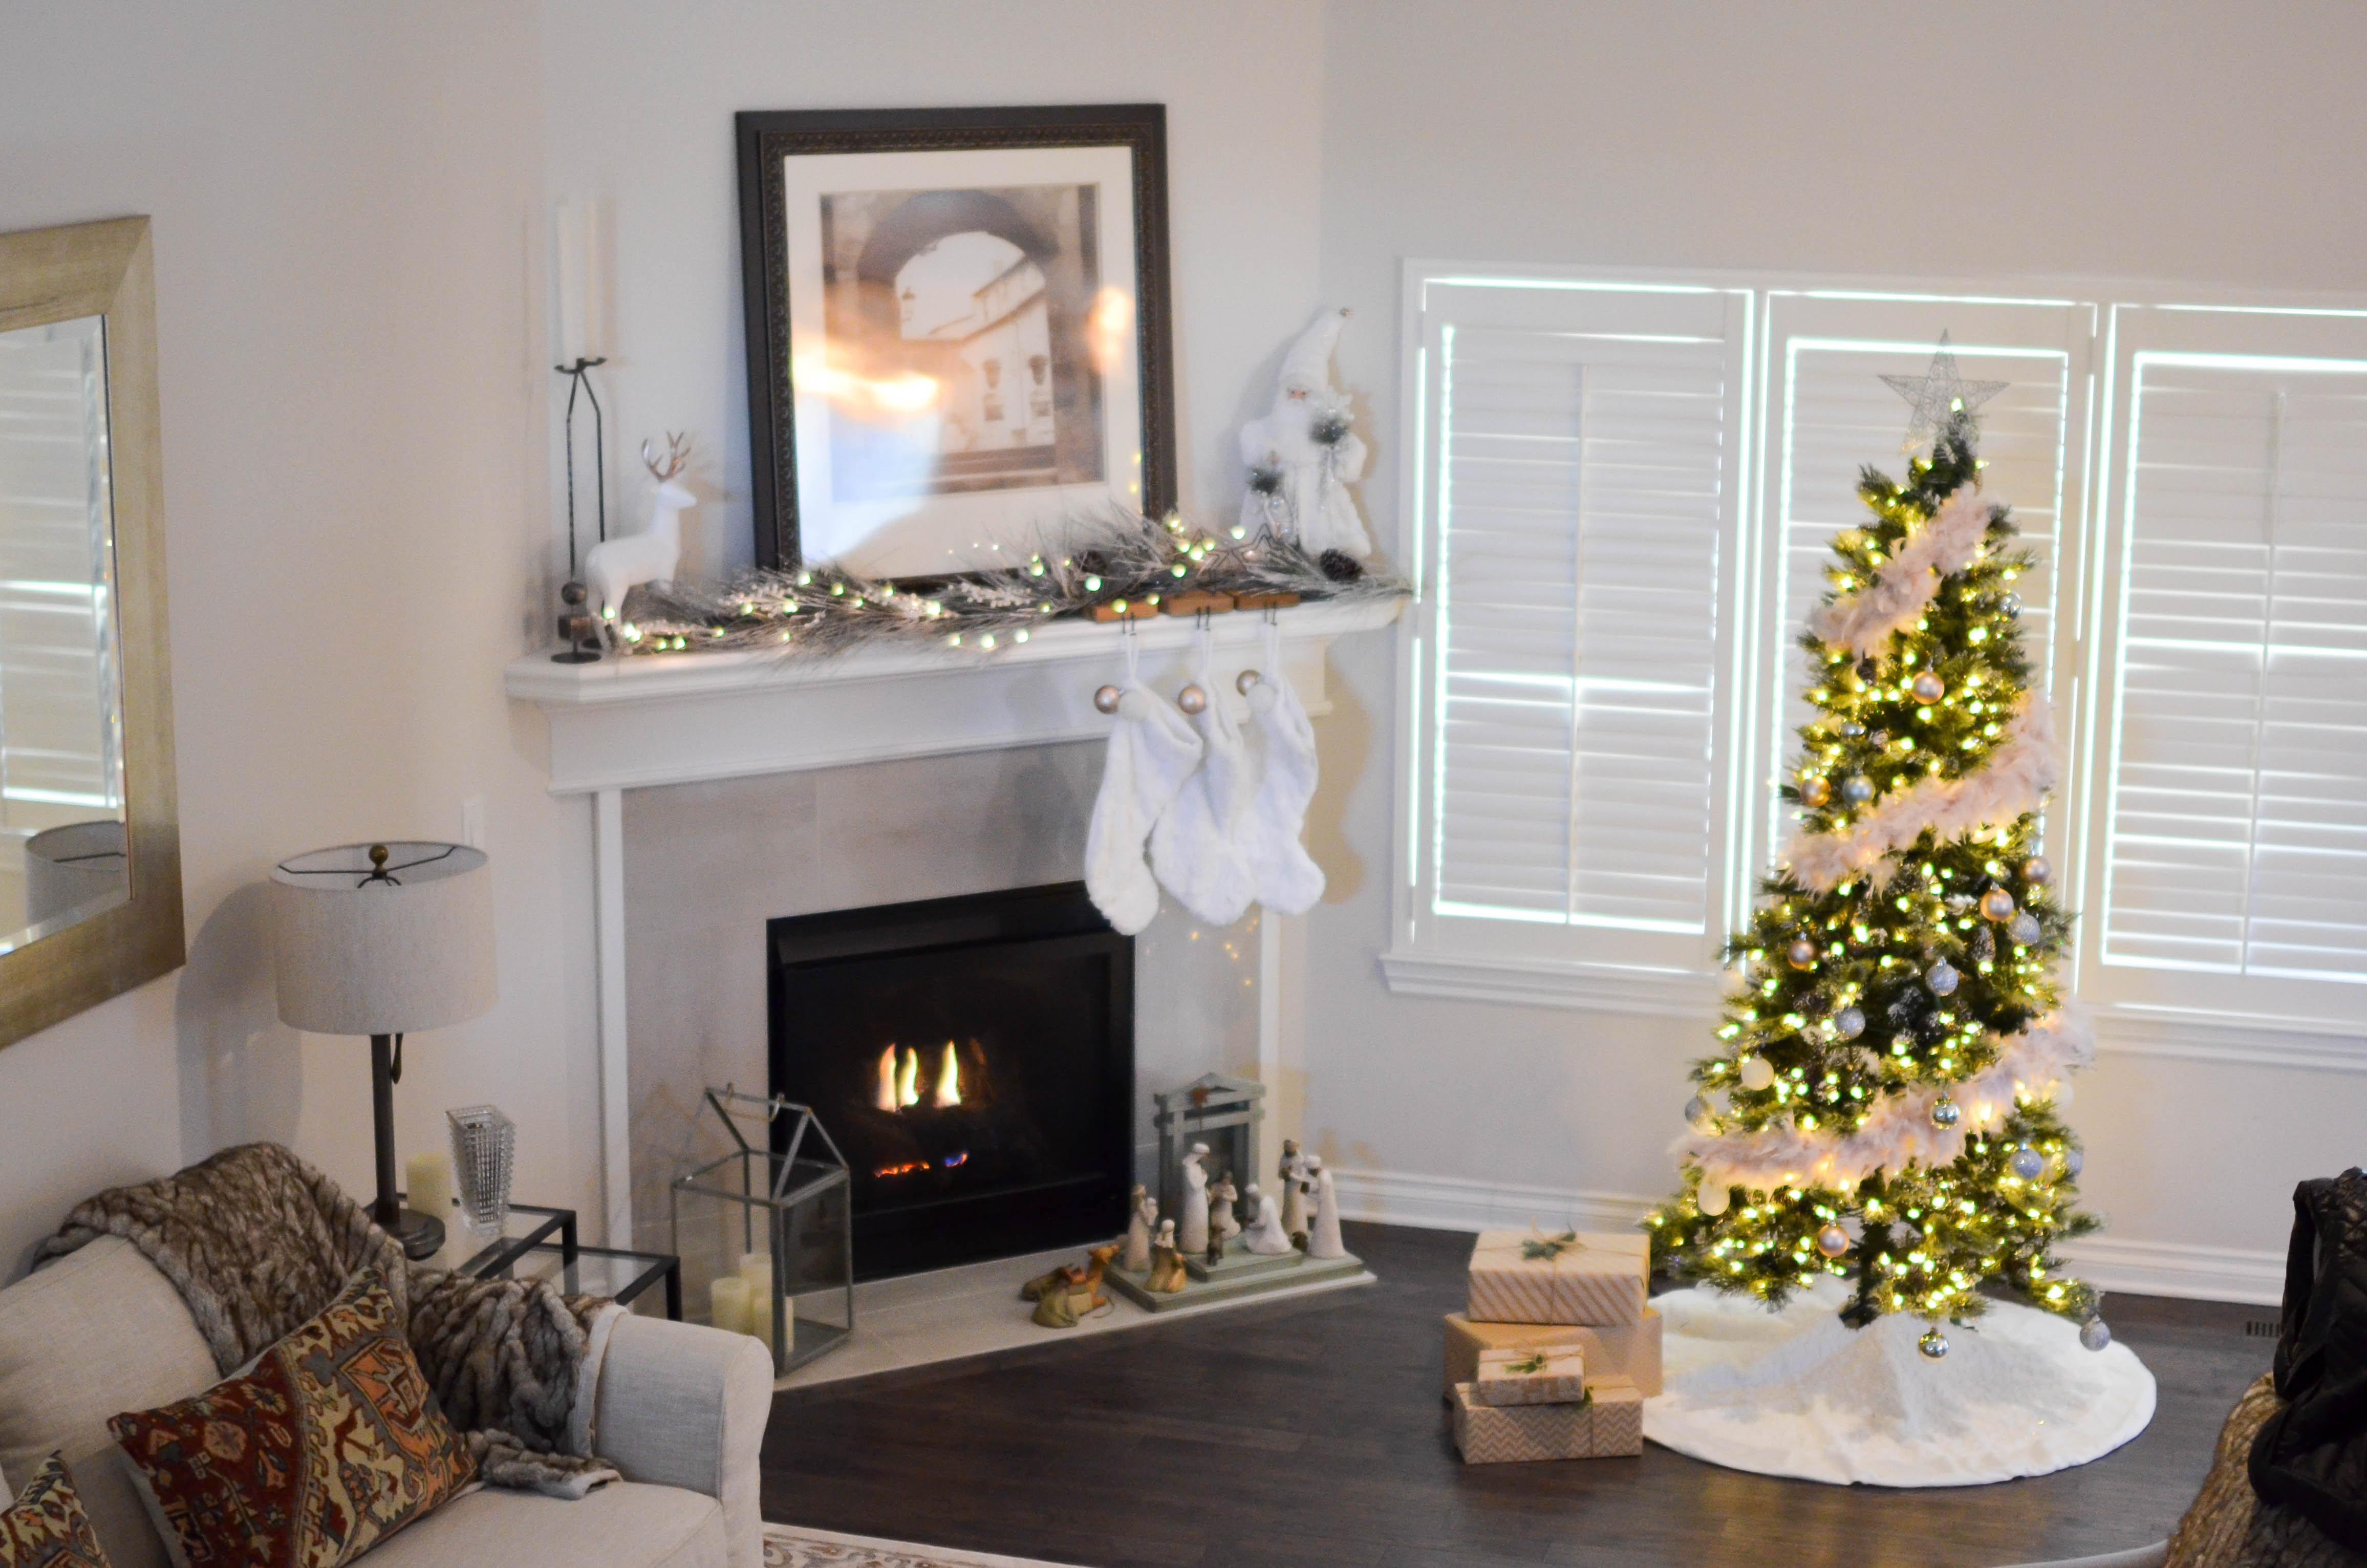 Green and White Pre-lit Pine Tree Near Fireplace Inside Well Lit Room, Room, Interior design, Light, Mirror, HQ Photo